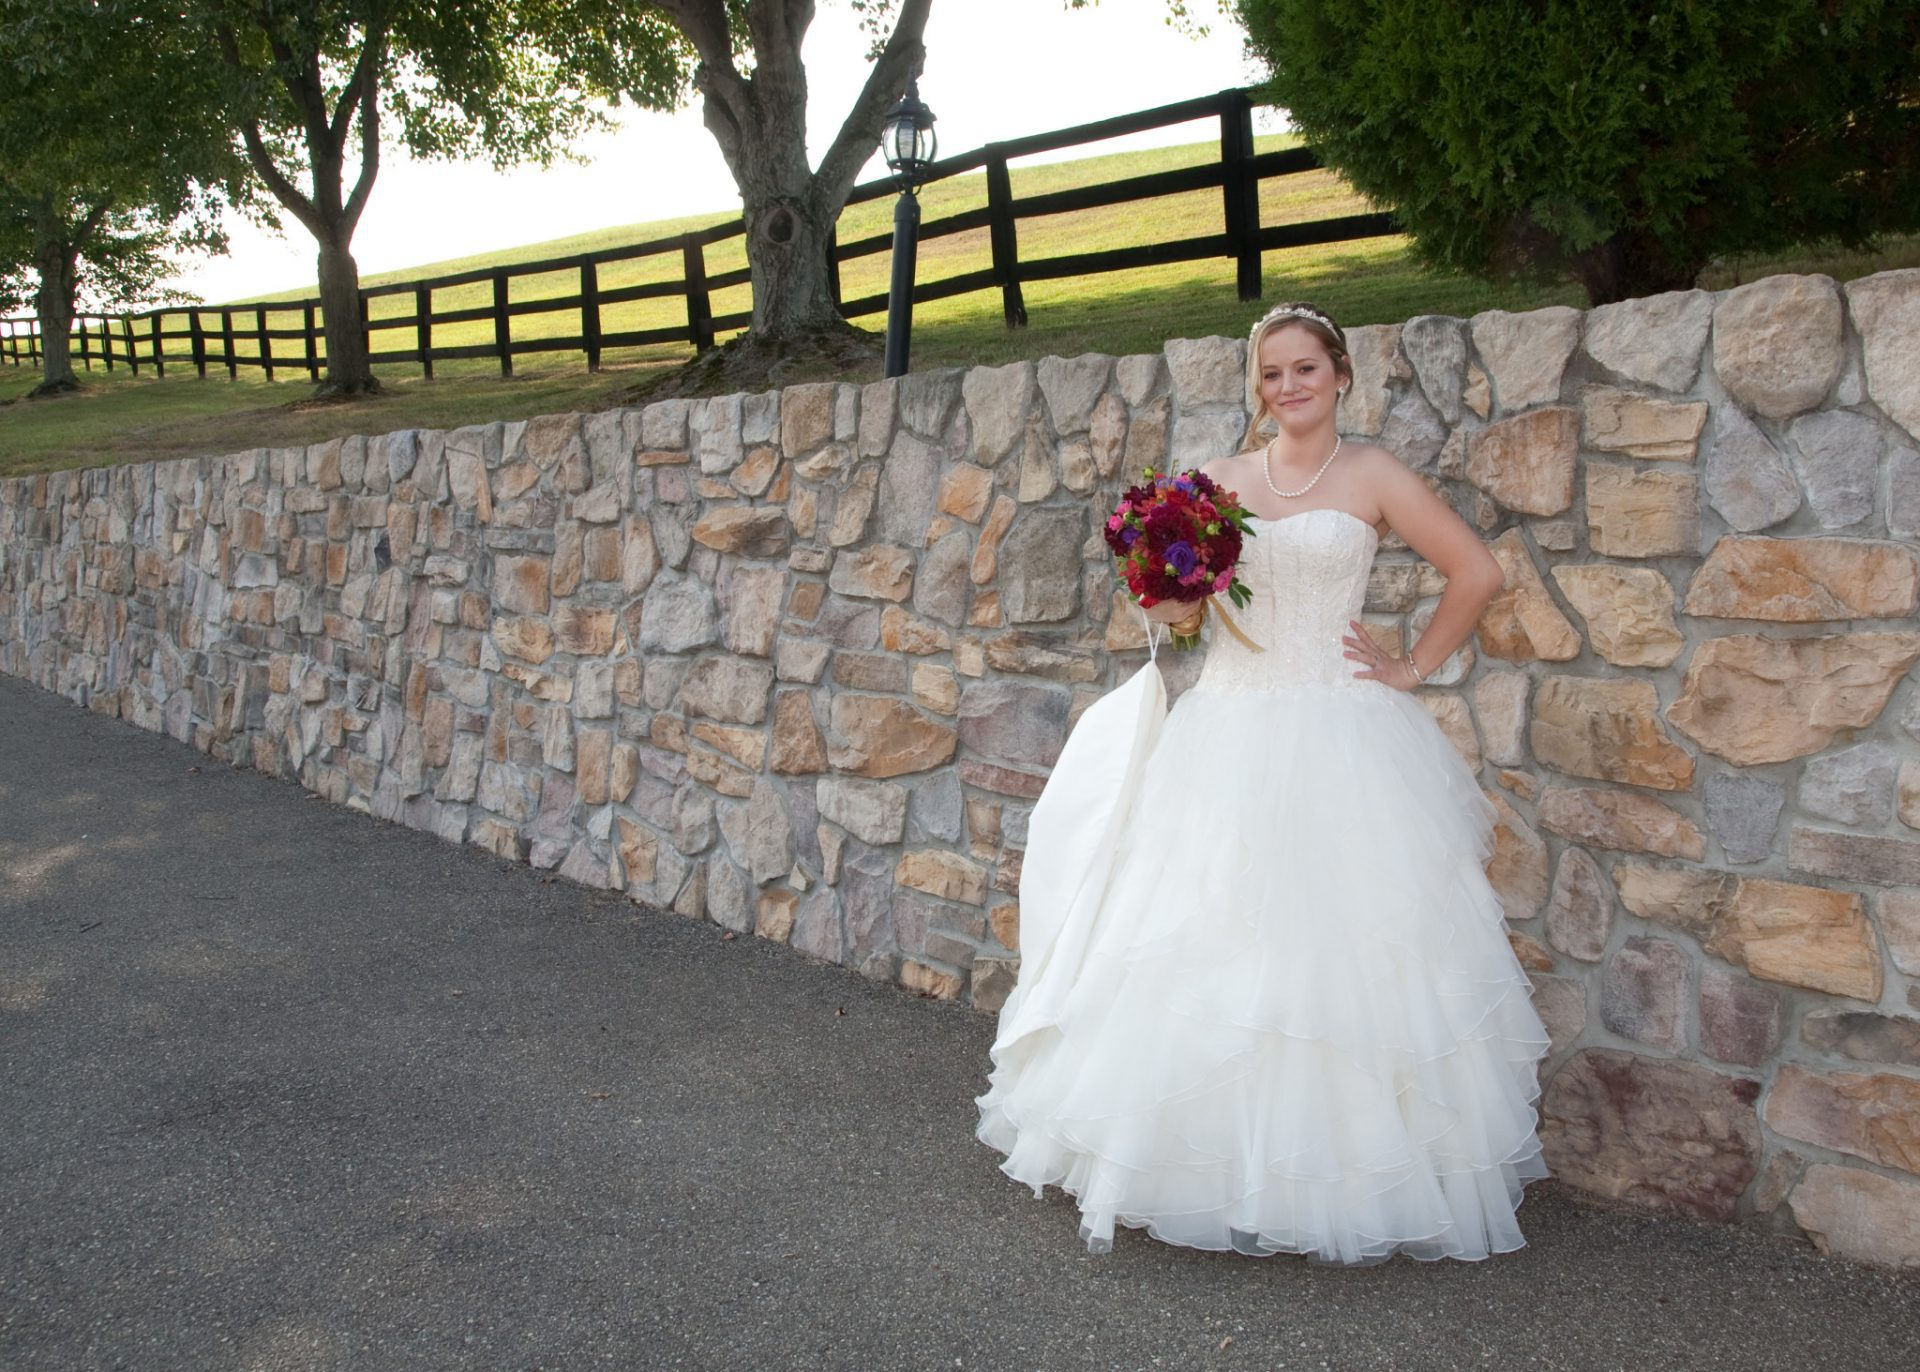 Bride poses by old stone wall at Morningside Inn wedding venue